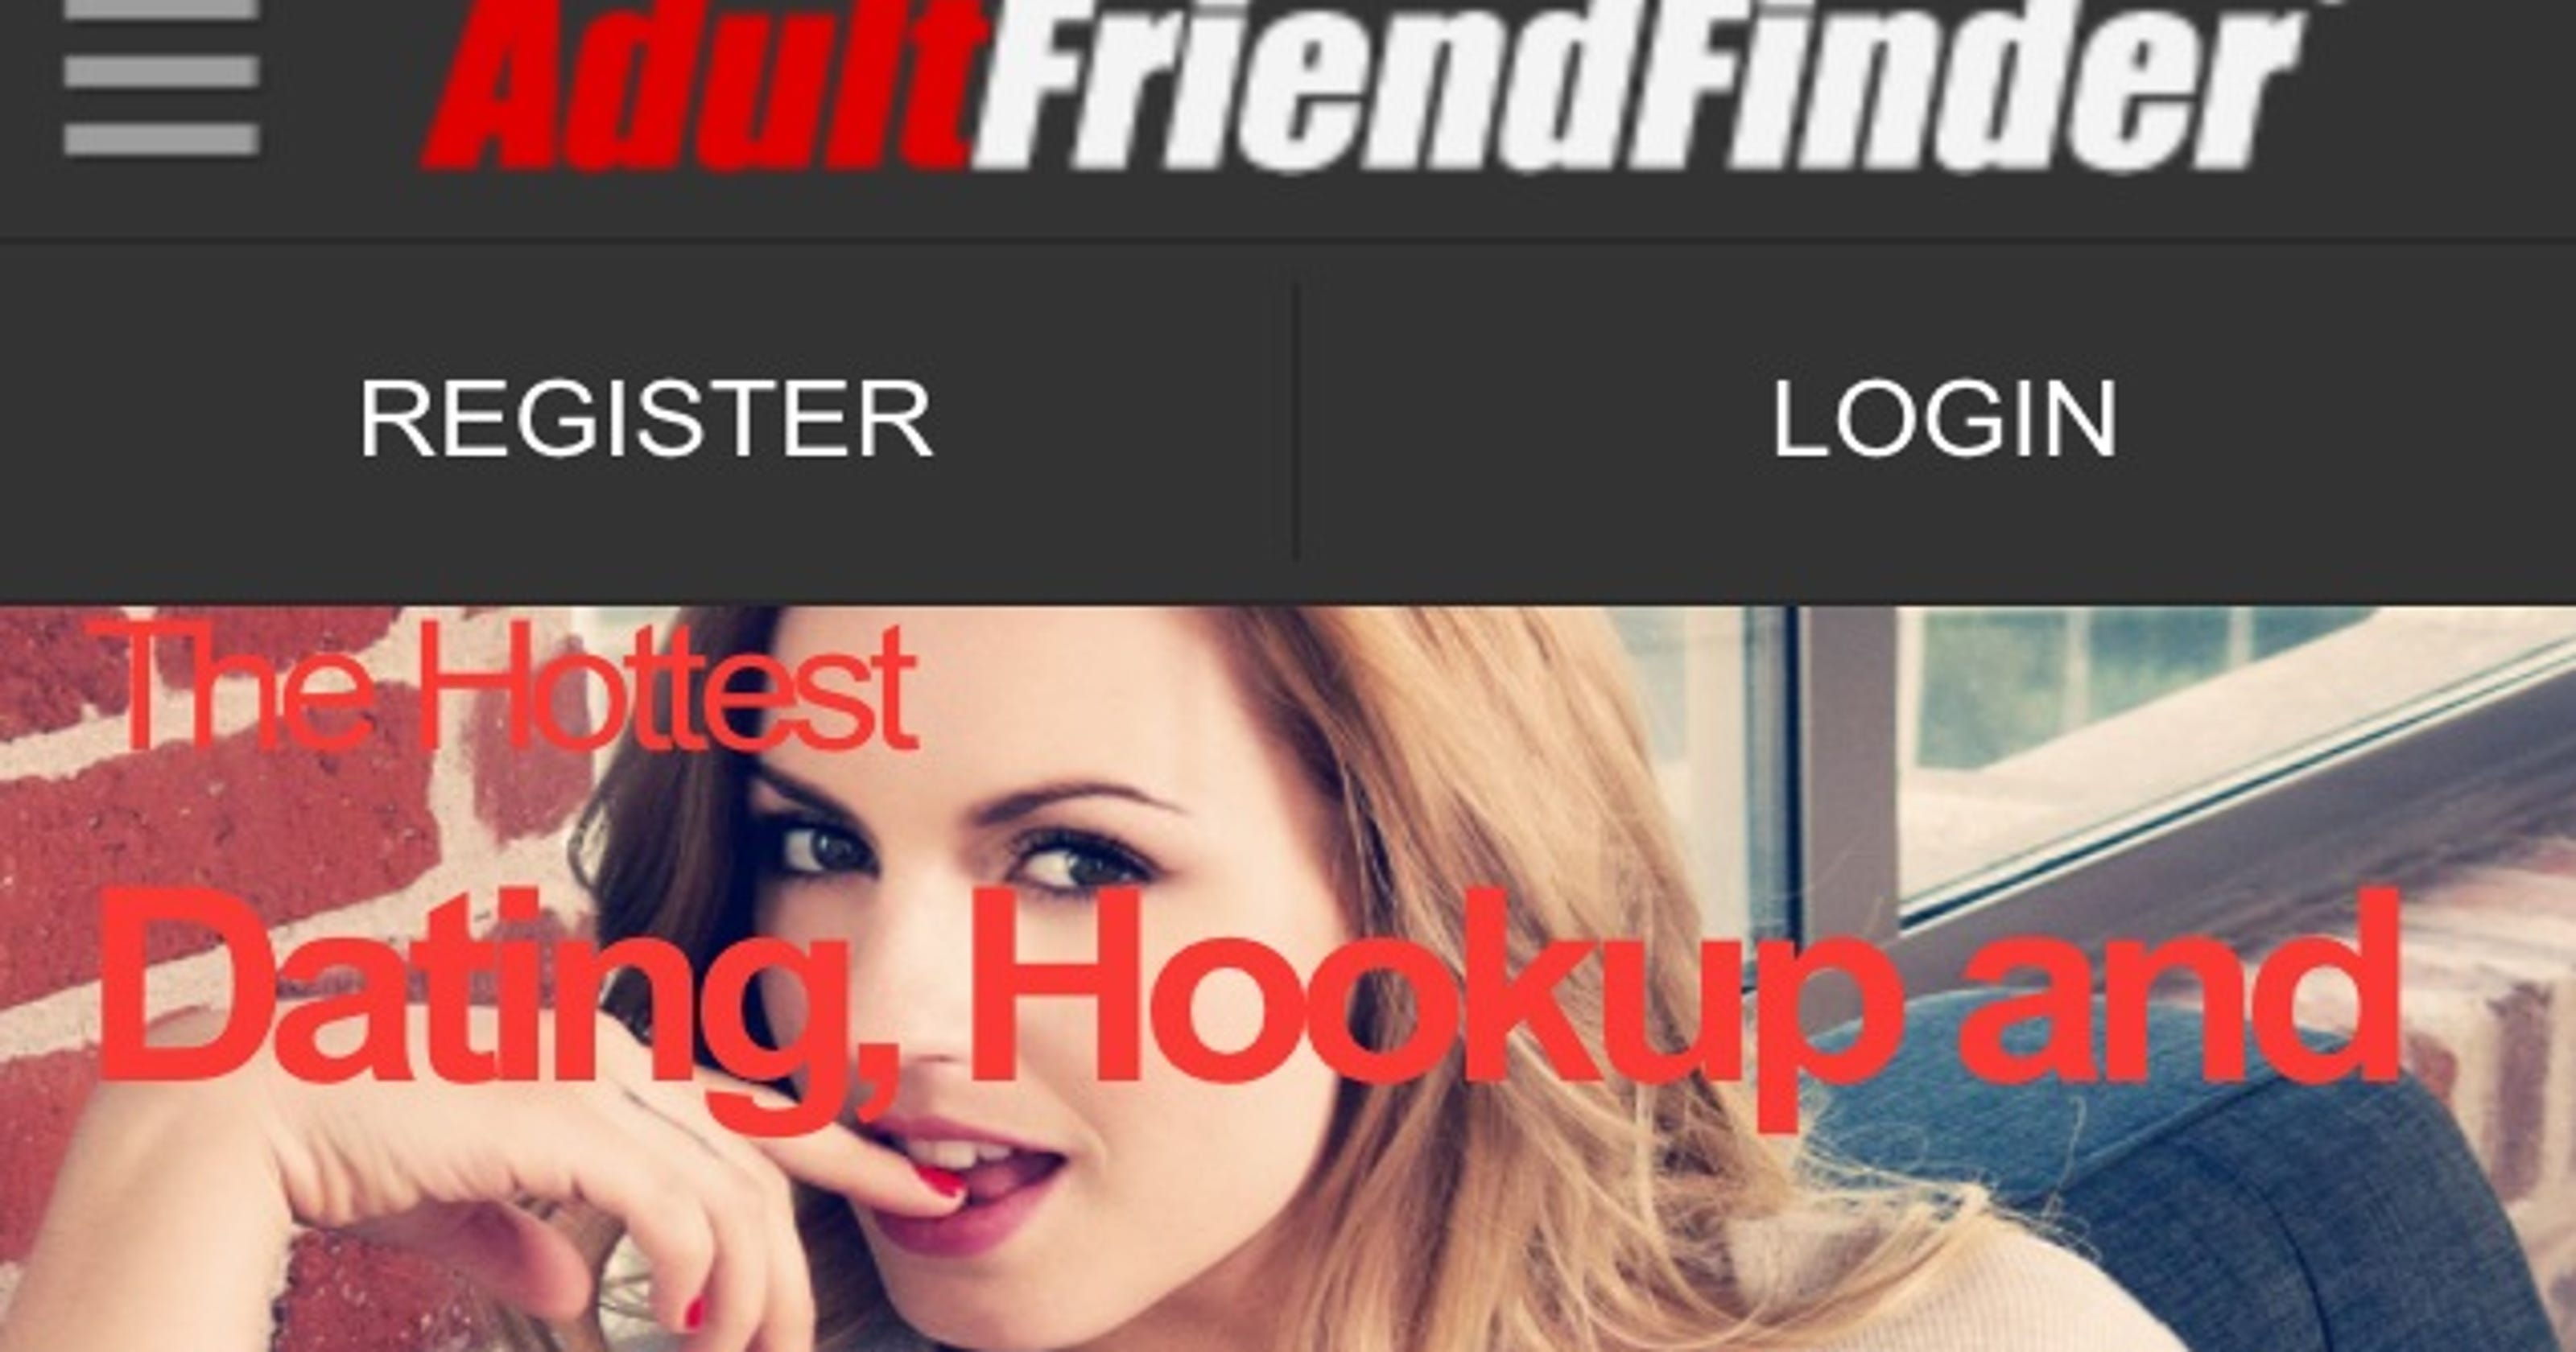 Adult friendfinder login